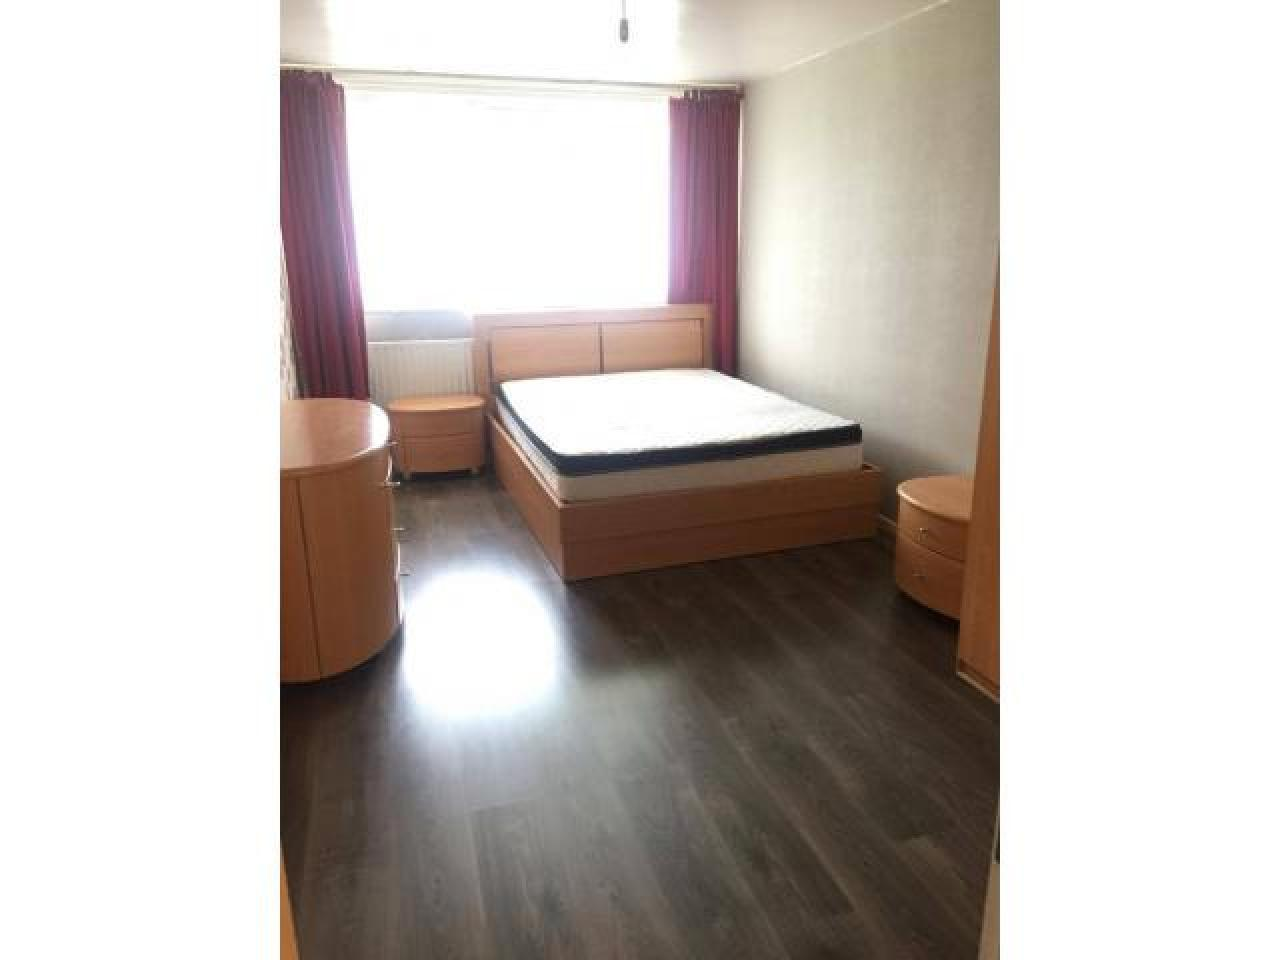 Double комната в аренду, £200/week, all bills included, Shadwell, London - 1